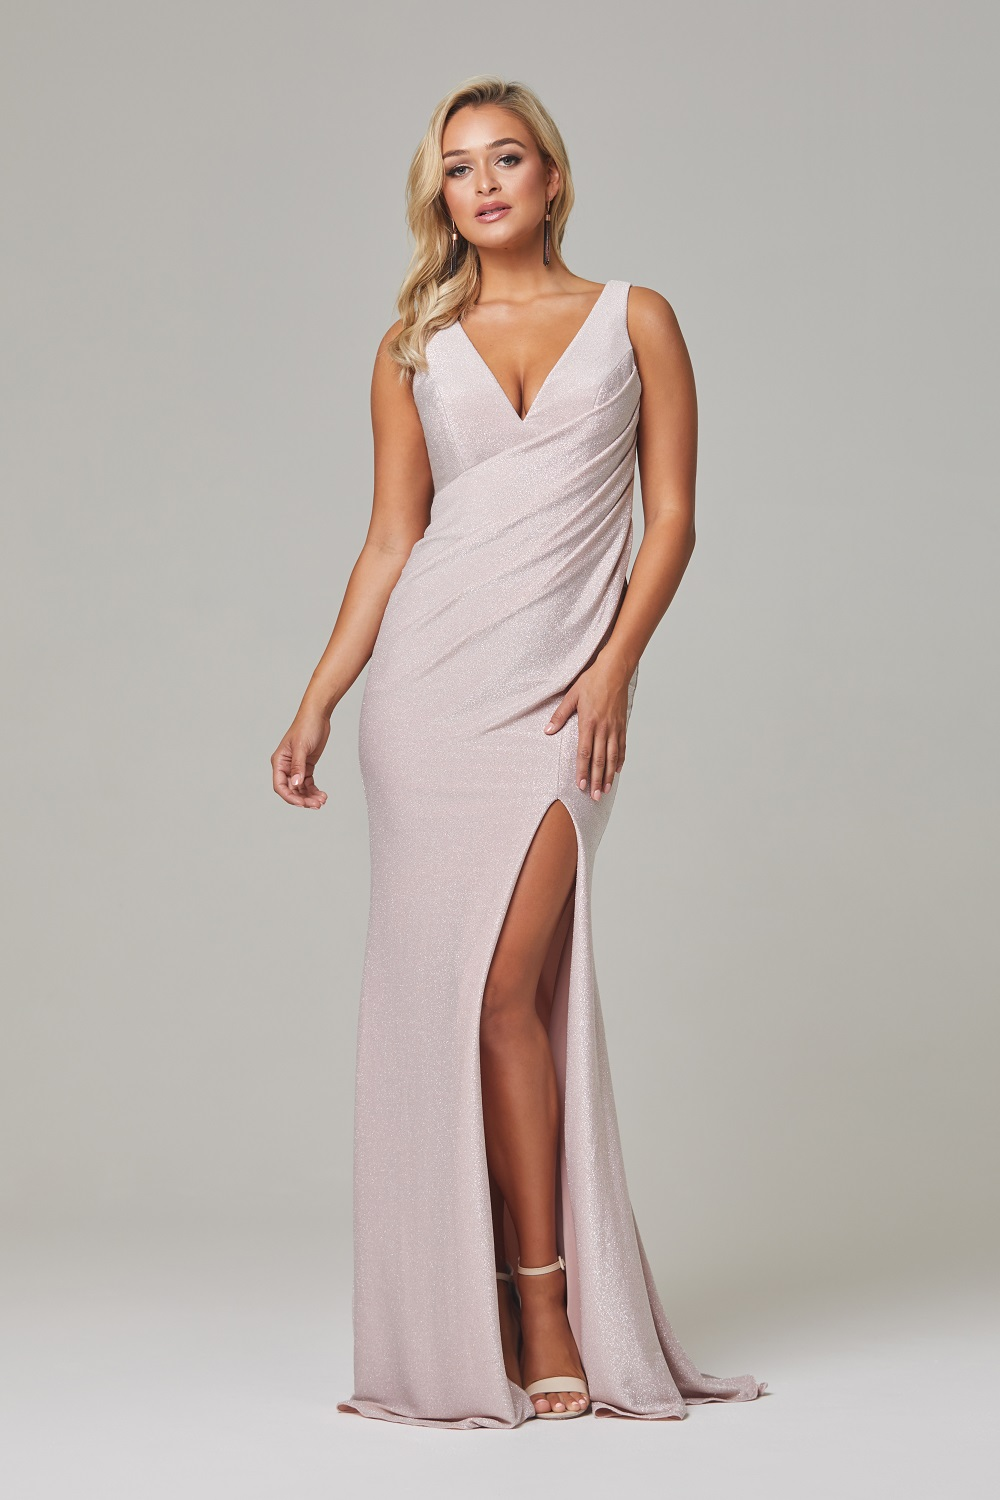 Londyn Evening Dress rose